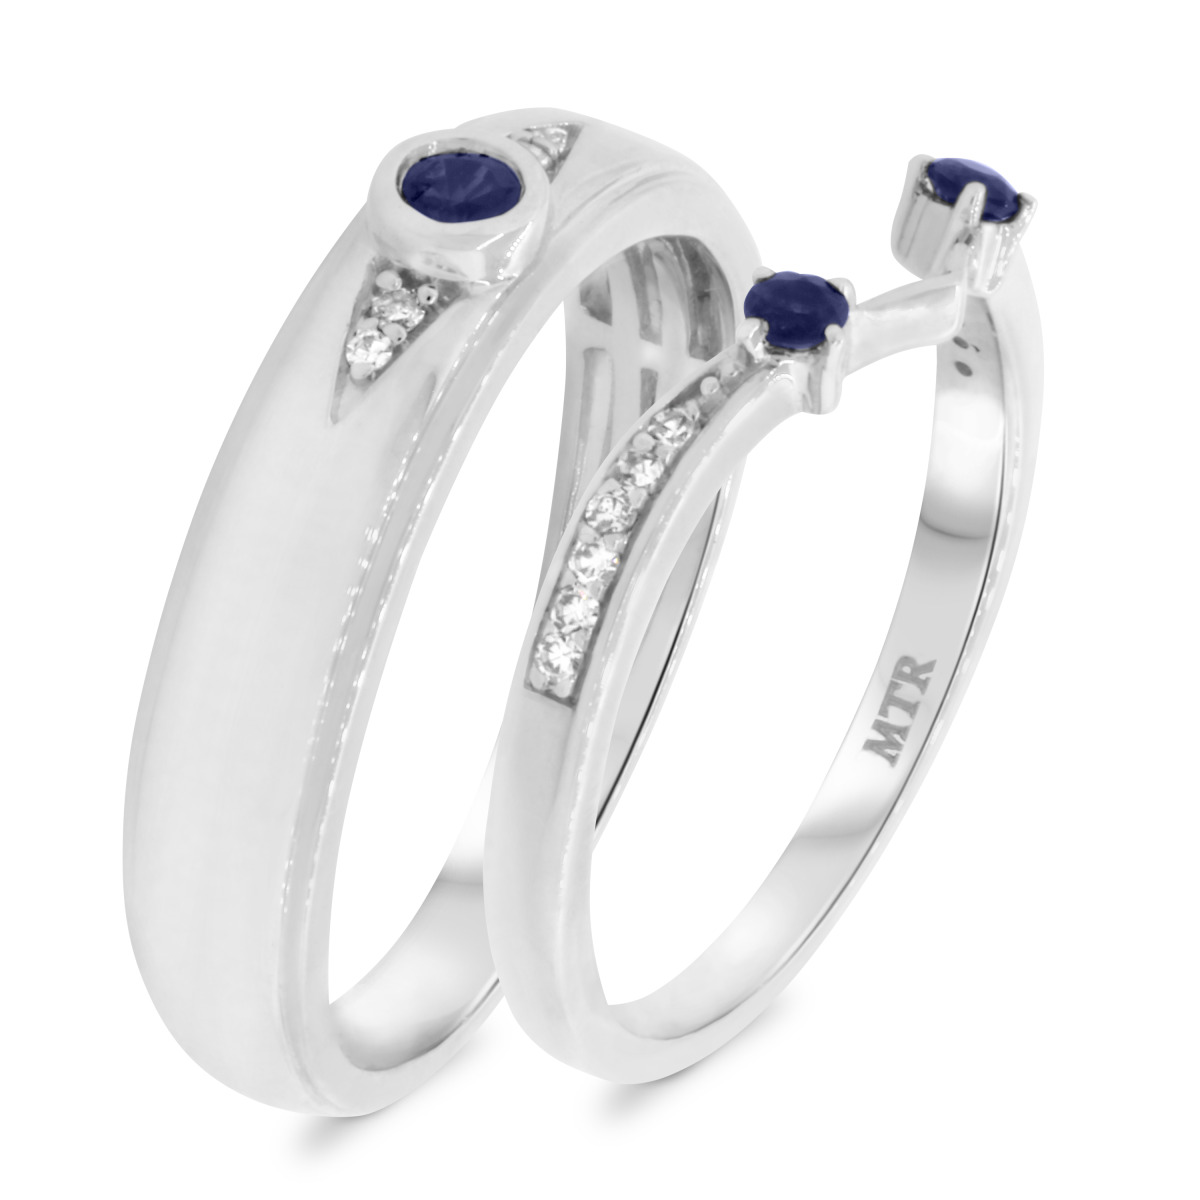 1/3 CT. T.W. Sapphire Matching Wedding Band Set 10K White Gold